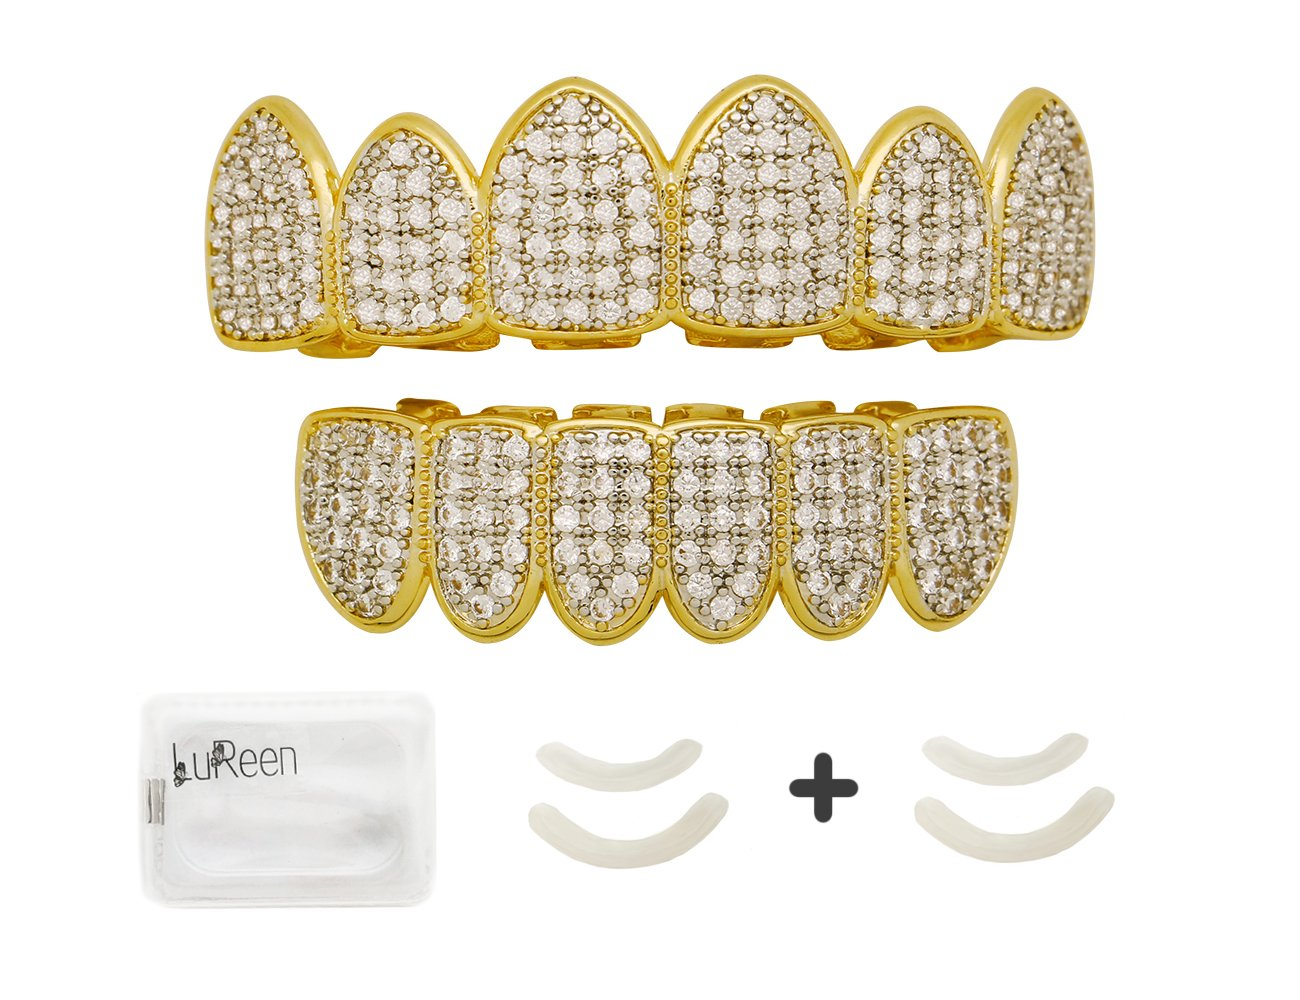 Lureen Gold Silver Two Tone Iced Out CZ Teeth Grillz Set with Molding Bars and Grillz Box (Grillz Set)